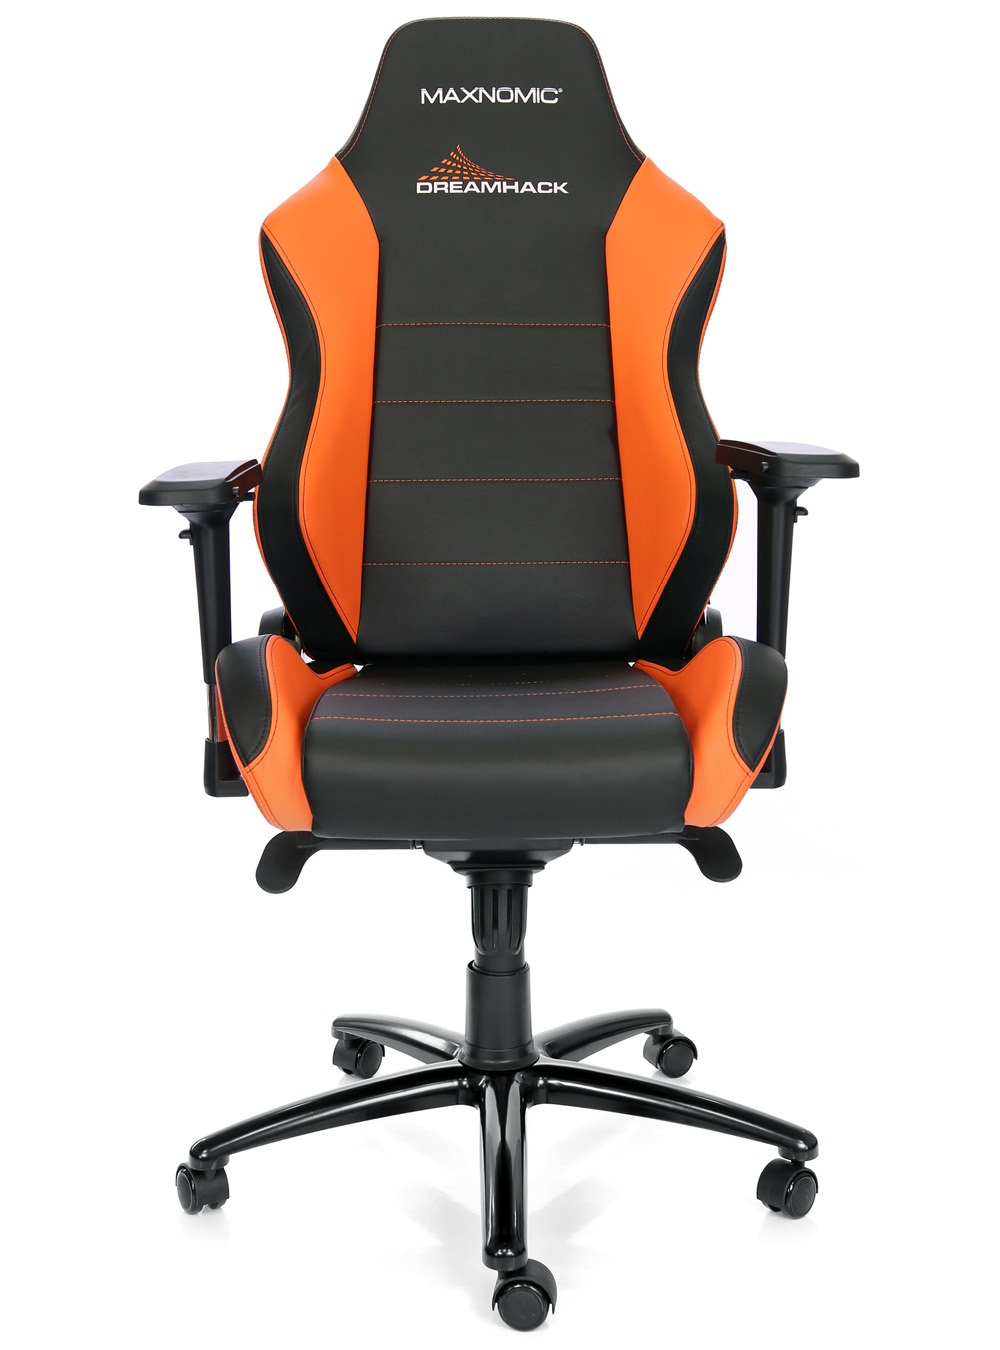 Cloud 9 Gaming Chair Maxnomic Vs Dxracer The Top Two Gaming Chair Brands Reviewed